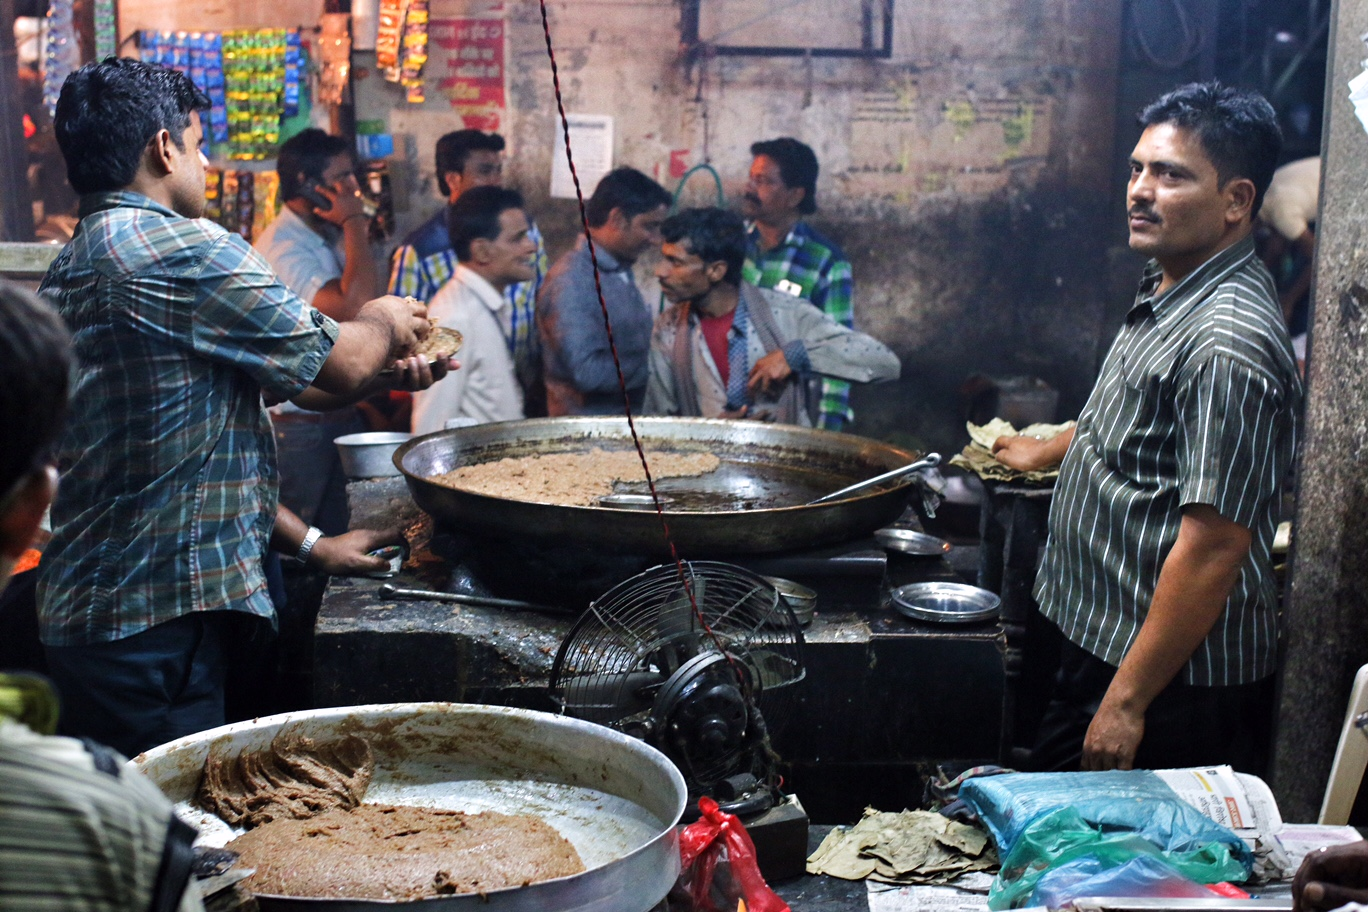 Street food of lucknow tunday kebab and other top food tips for a tunday kebab street food lucknow chowk forumfinder Choice Image